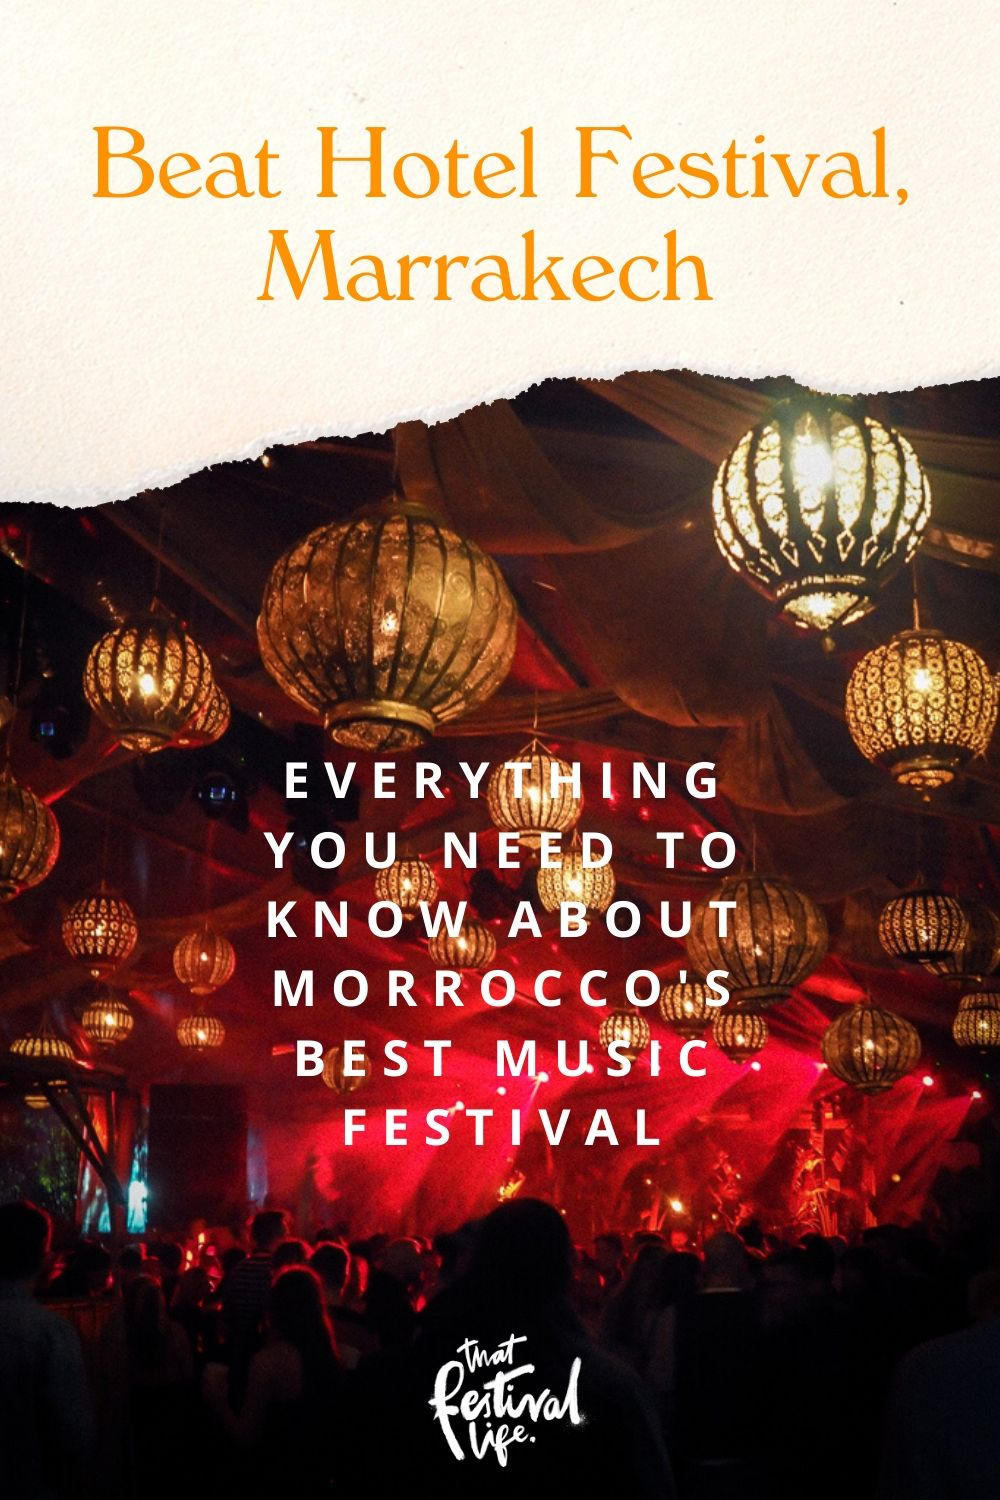 Dreaming of Moroccan nights. Everything you need to know about Beat Hotel Festival, the magical 4 day party in a Marrakech Riad | How to get there, what to bring, what its like & more!